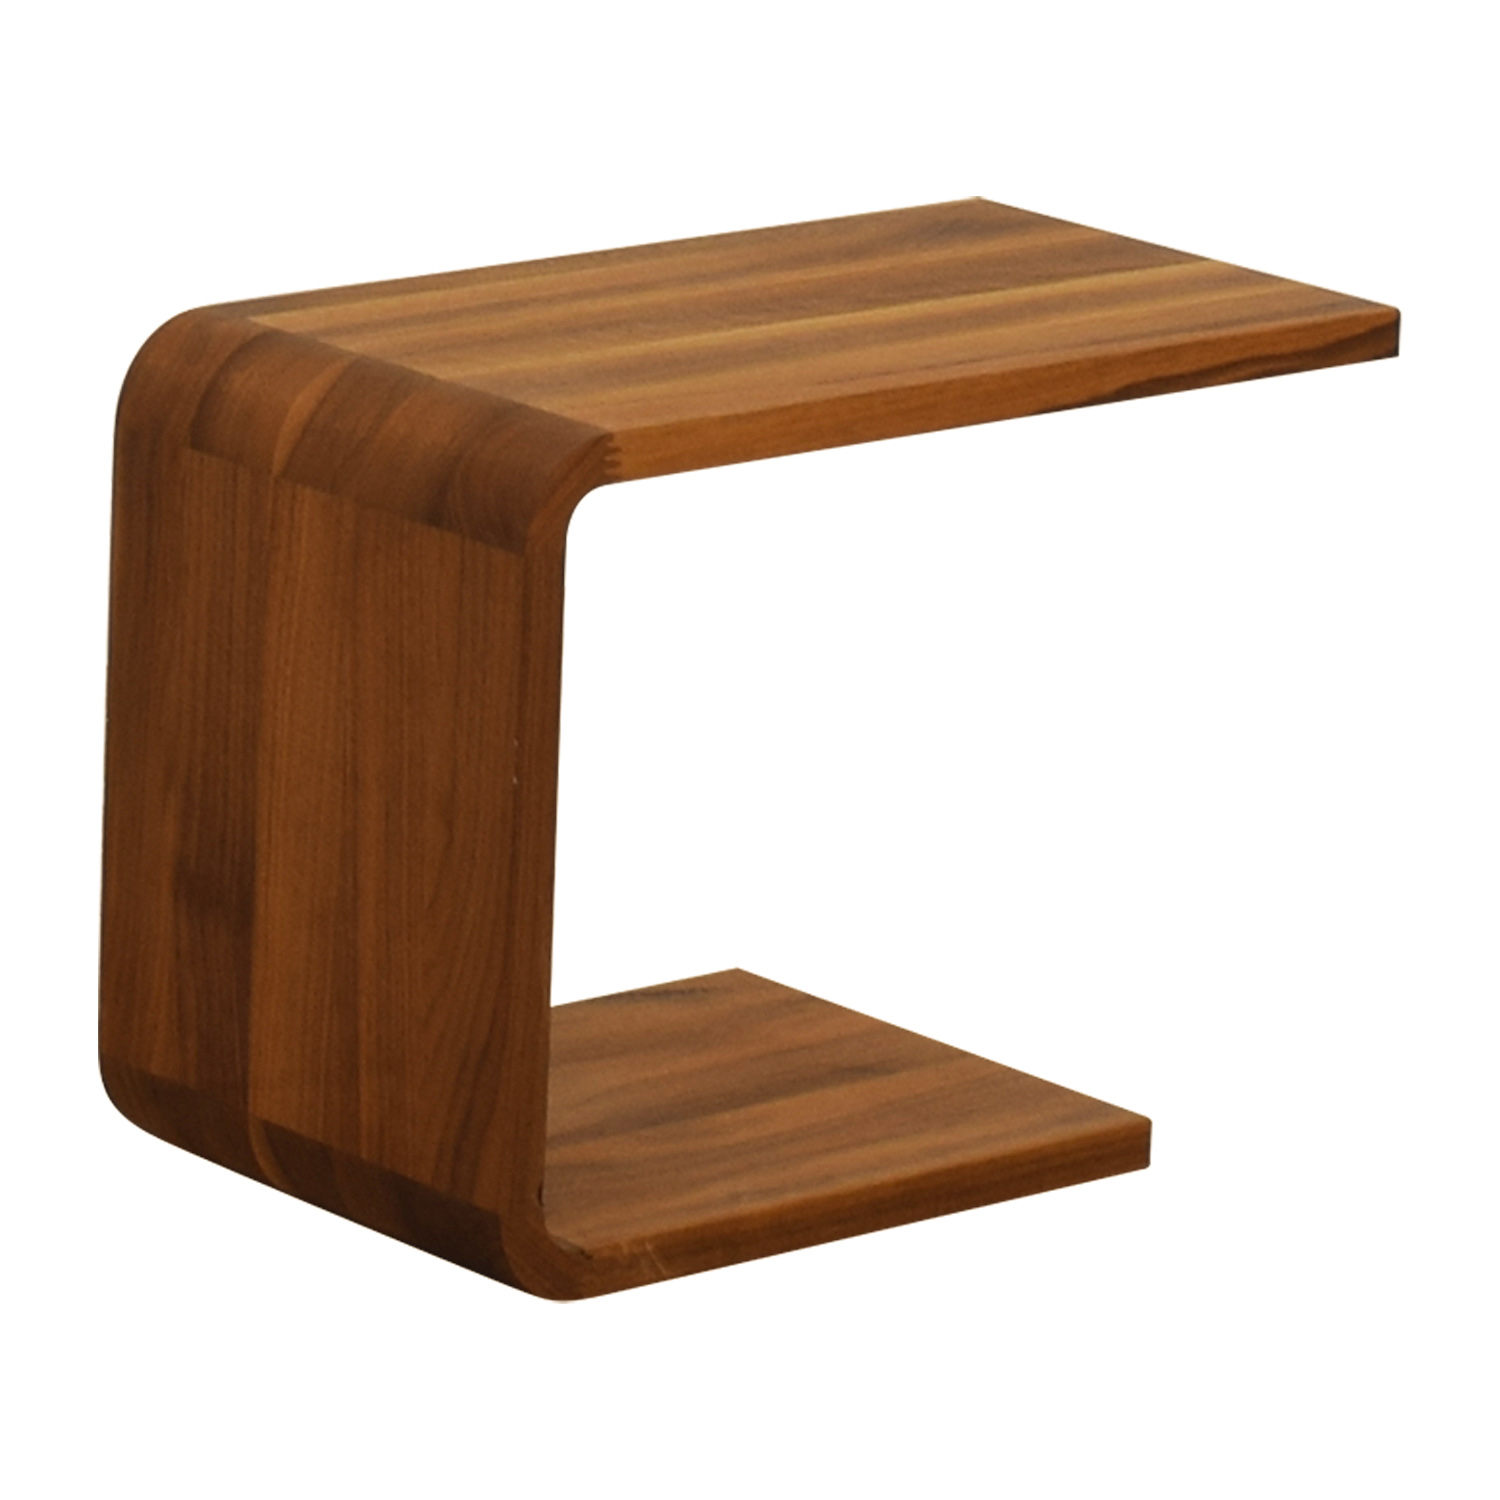 shop Zeitraum Zeitraum Formstelle Waiter Side Table online